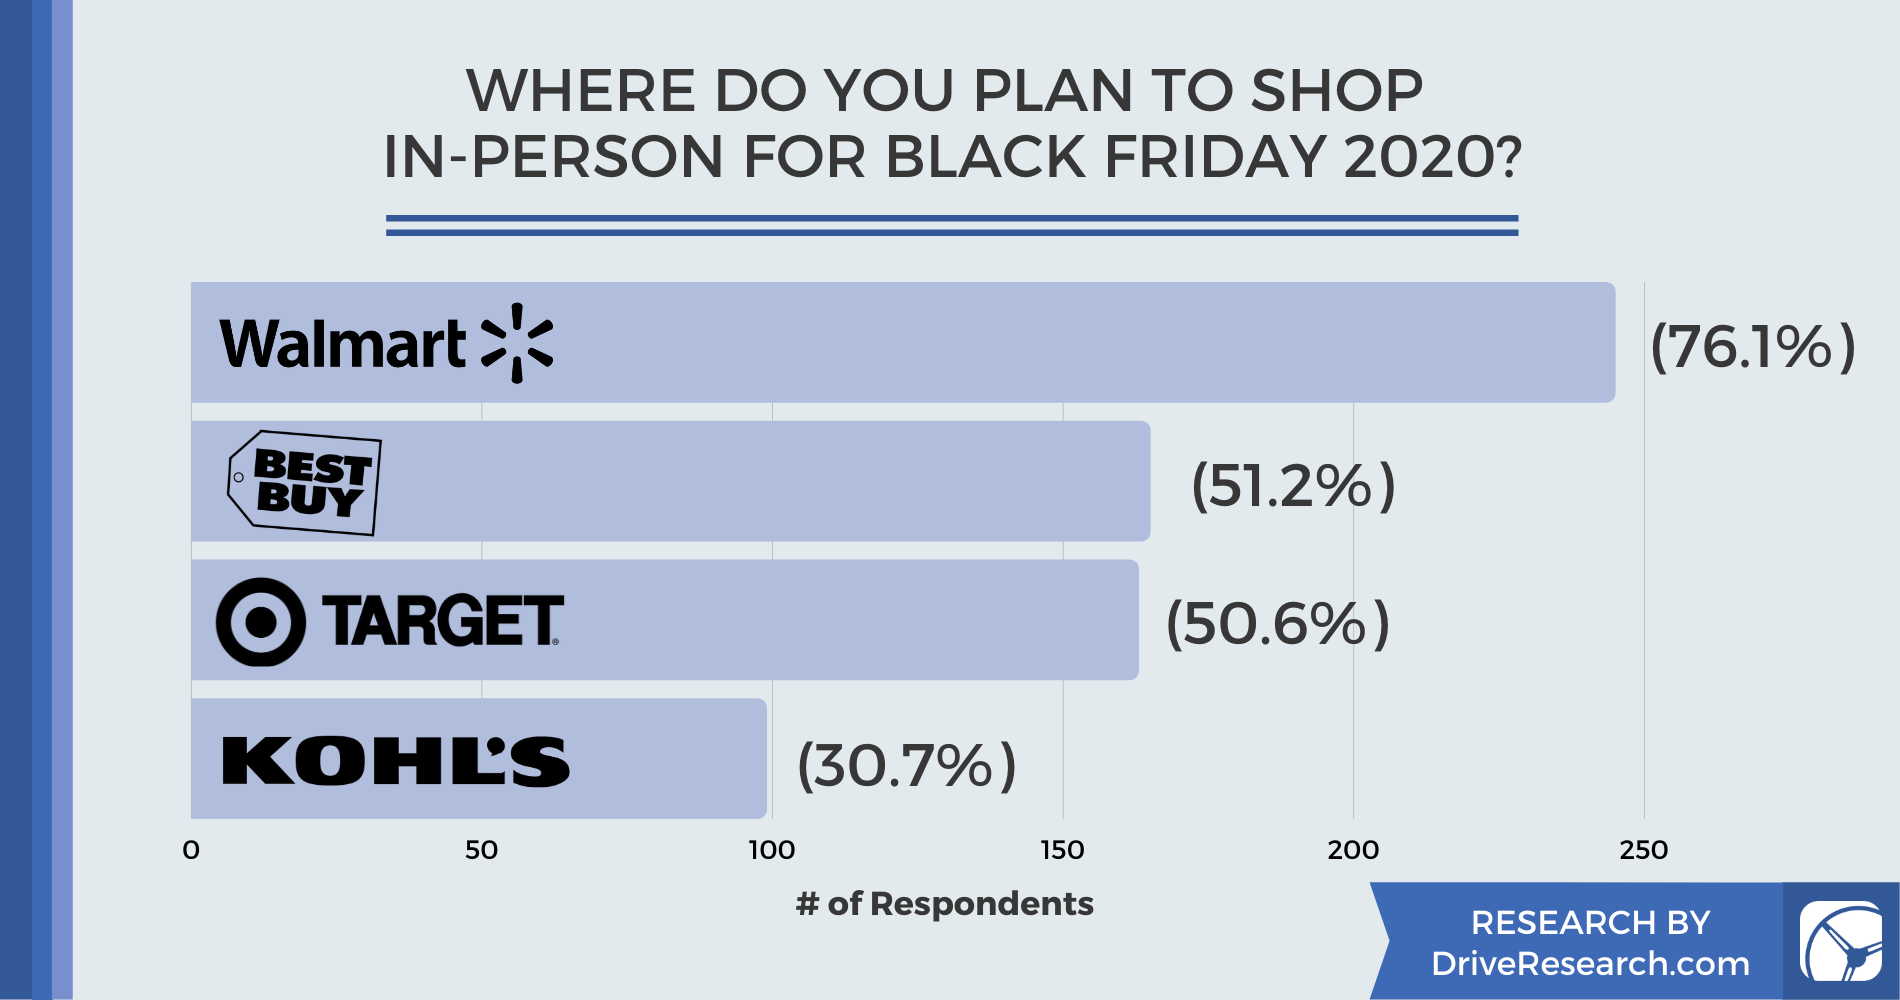 Black Friday 2020: eCommerce Sites Can Expect a 28% Increase in Online Shopping from 2019